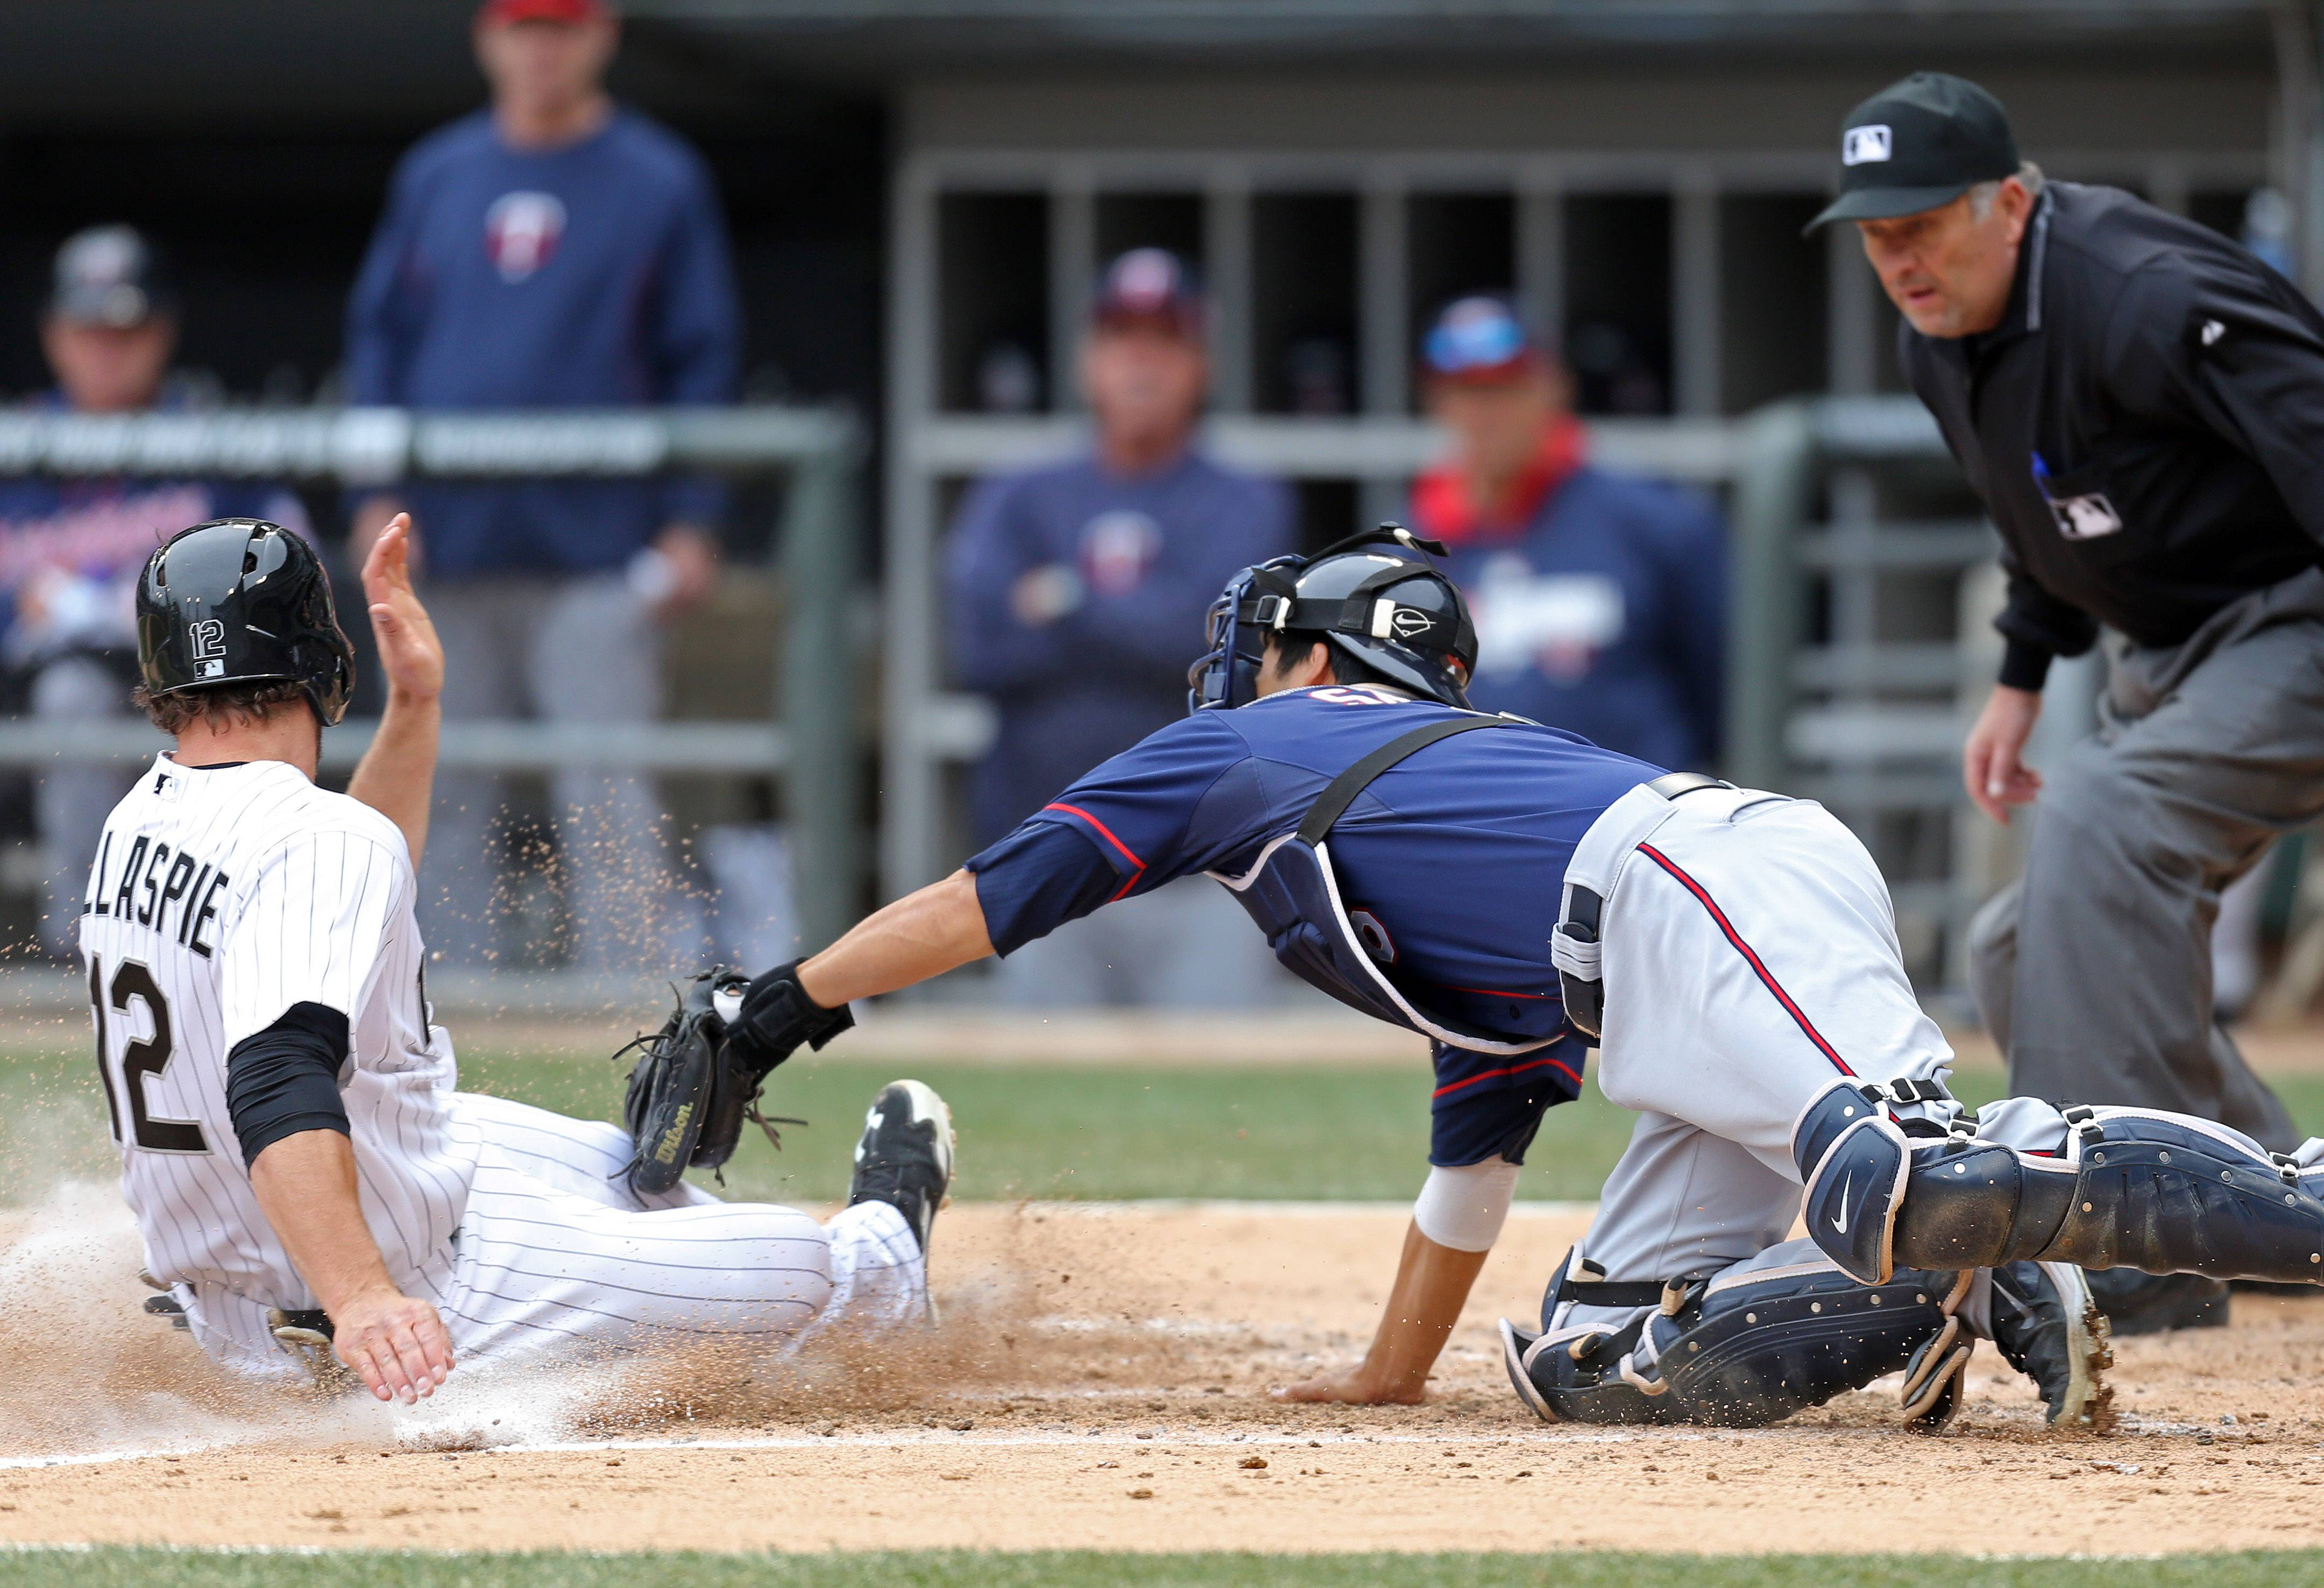 Conor Gillaspie scores on a play at home during the White Sox home opener against the Minnesota Twins Monday at U.S. Cellular Field.